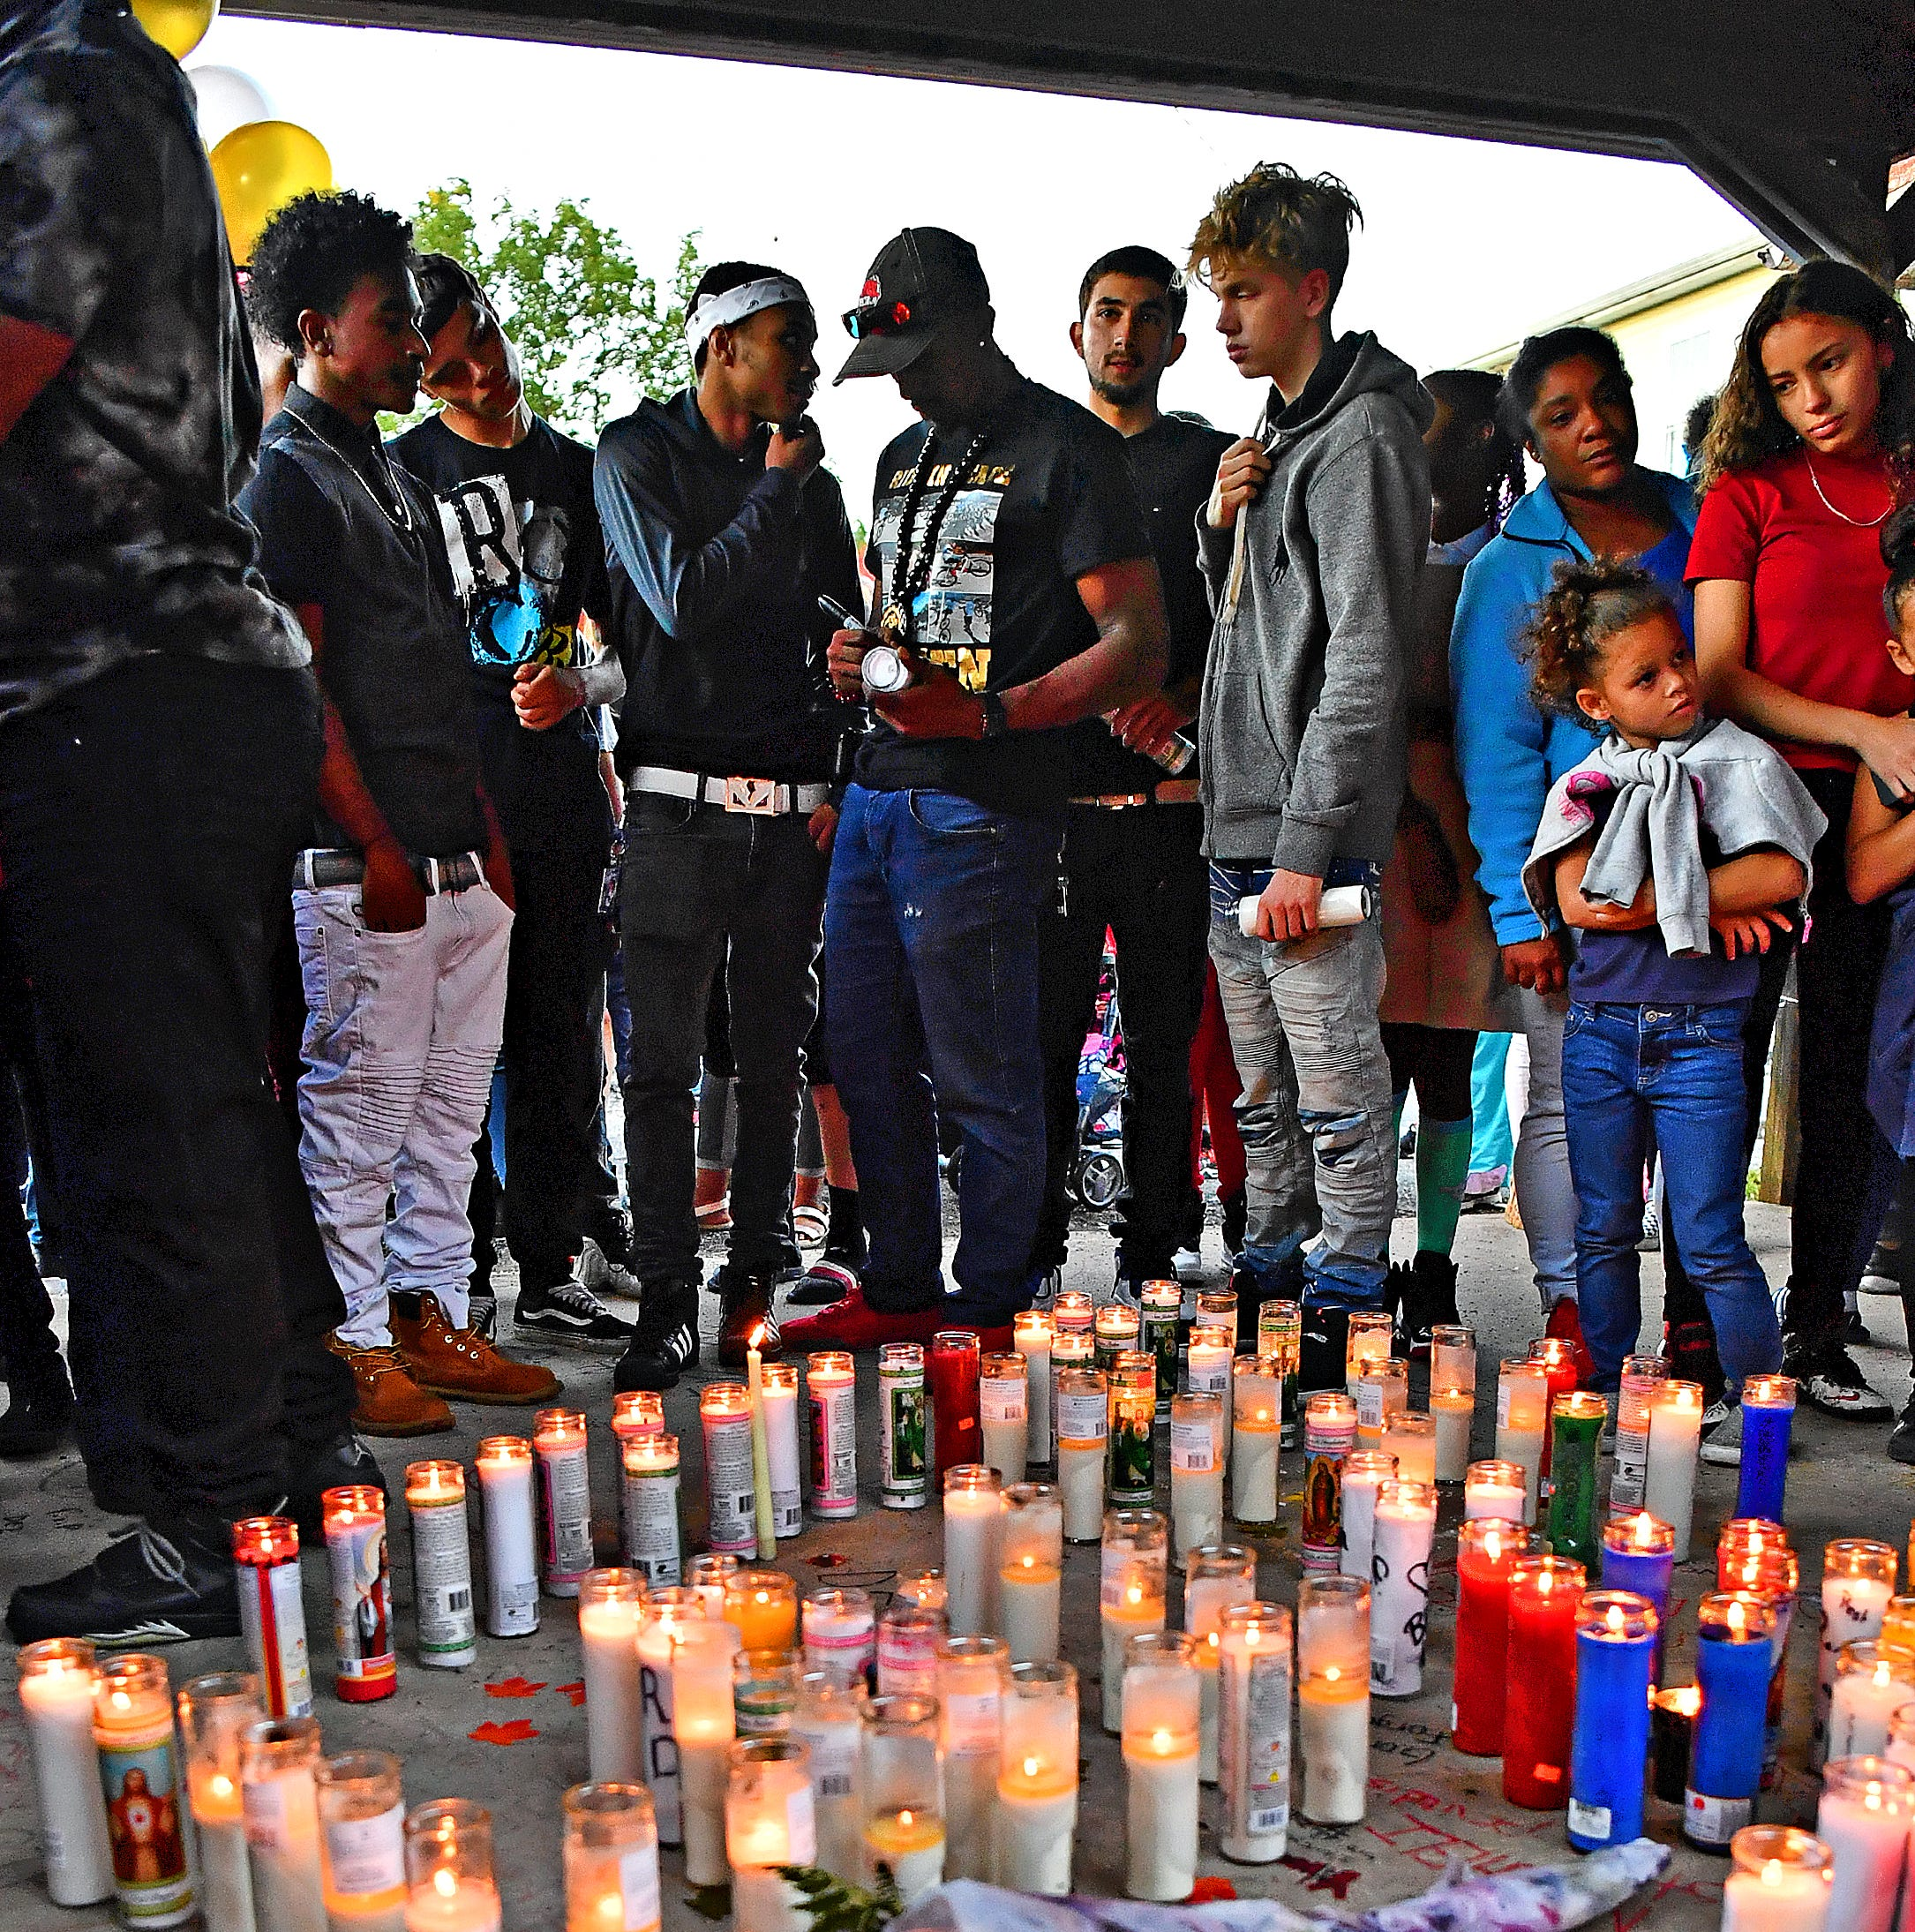 Dozens of family members and friends gather to remember shooting victim Dezmen Jones, 15, during a candlelight vigil behind a home at 613 West Princess Street in York City, Friday, Sept. 28, 2018. Jones was shot at the location on Wednesday, Sept. 26, and later died at York Hospital from his injuries. Dawn J. Sagert photo